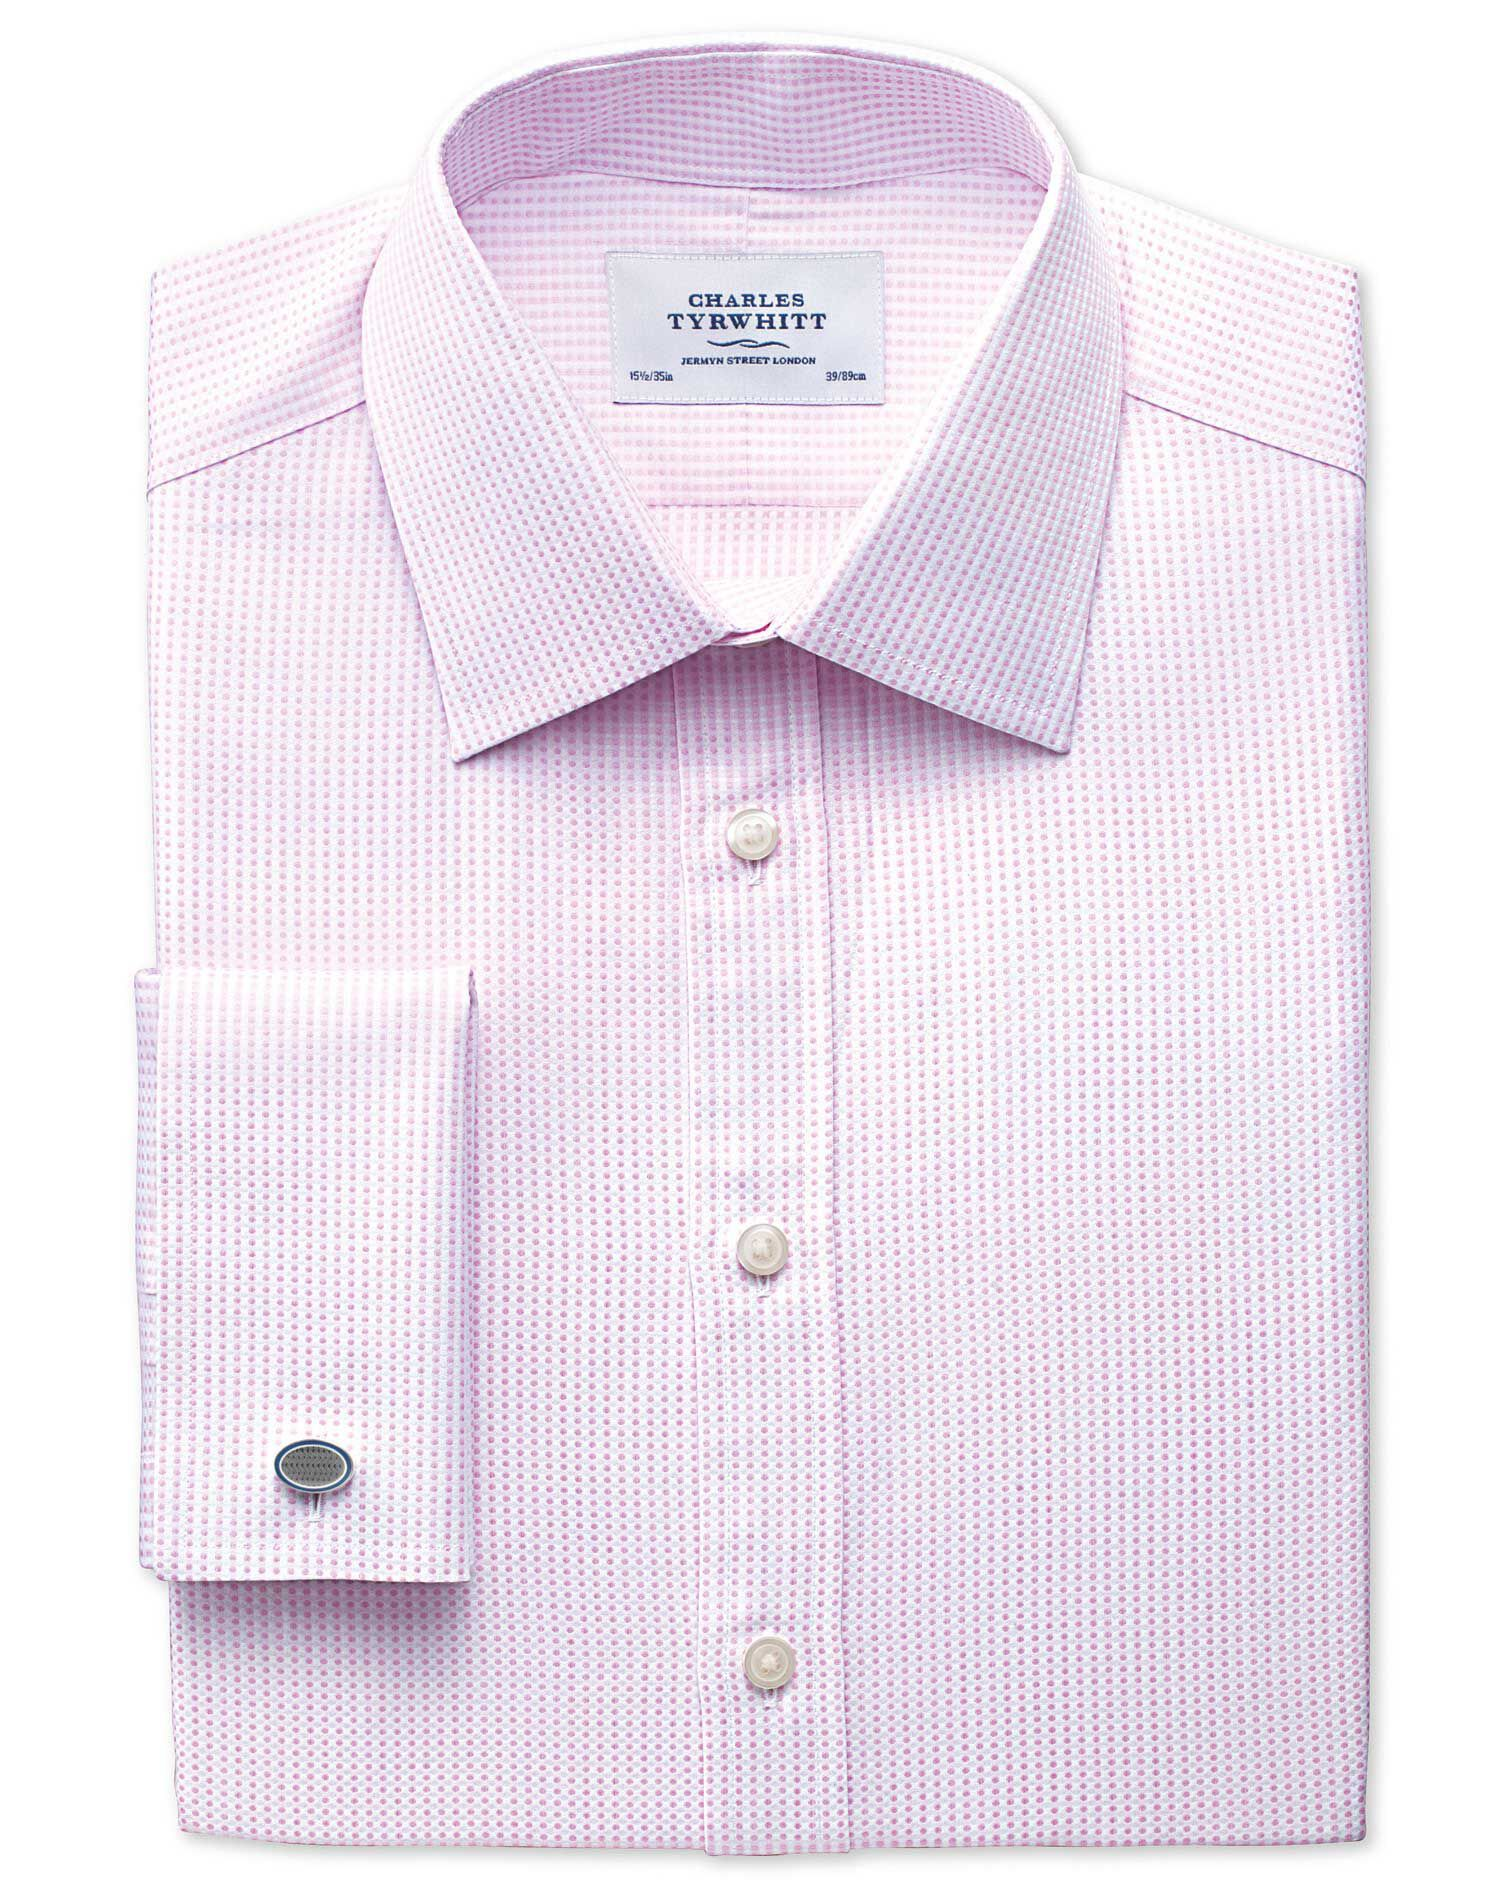 Charles Tyrwhitt Extra Slim Fit Pima Cotton Double-Faced Light Pink Formal Shirt Size 17/33